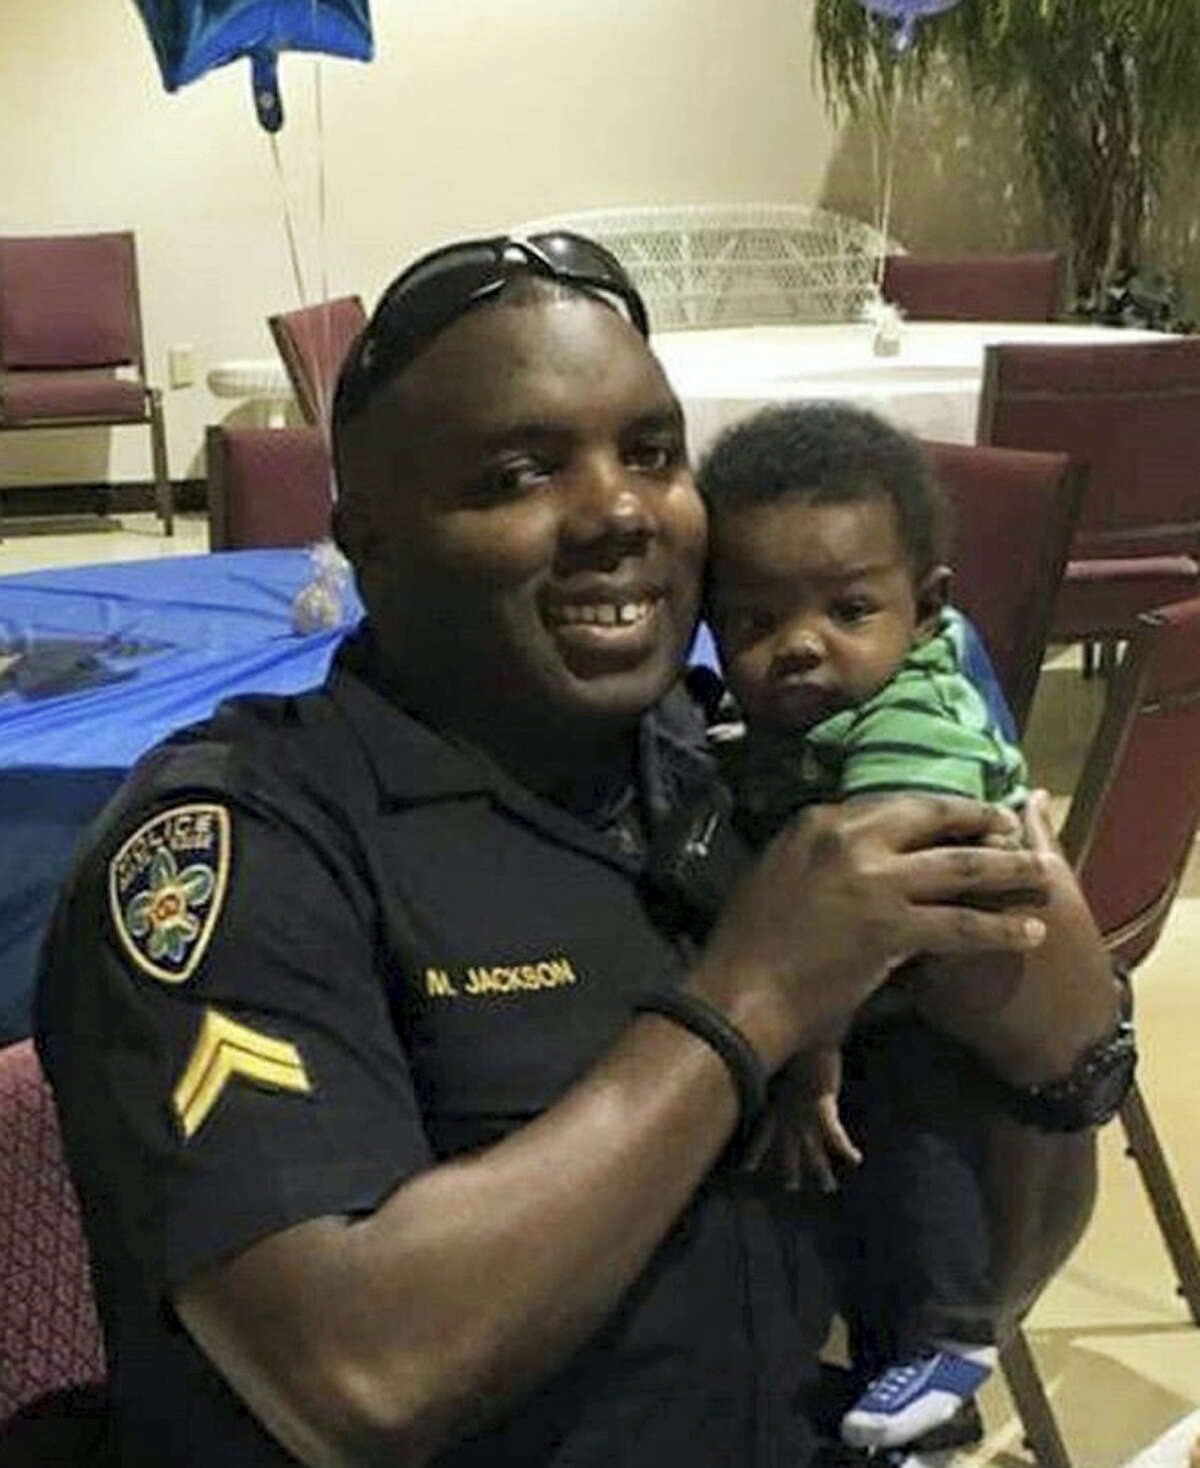 In this 2016 photo provided by Trenisha Jackson, her husband, Baton Rouge Police Officer Montrell Jackson, holds his son Mason at a Father's Day event for police officers in Baton Rouge, La. Montrell Jackson and two other Baton Rouge law enforcement officers investigating a report of a man with an assault rifle were killed Sunday, less than two weeks after a black man was fatally shot by police here in a confrontation that sparked nightly protests that reverberated nationwide. (Courtesy of Trenisha Jackson via AP)